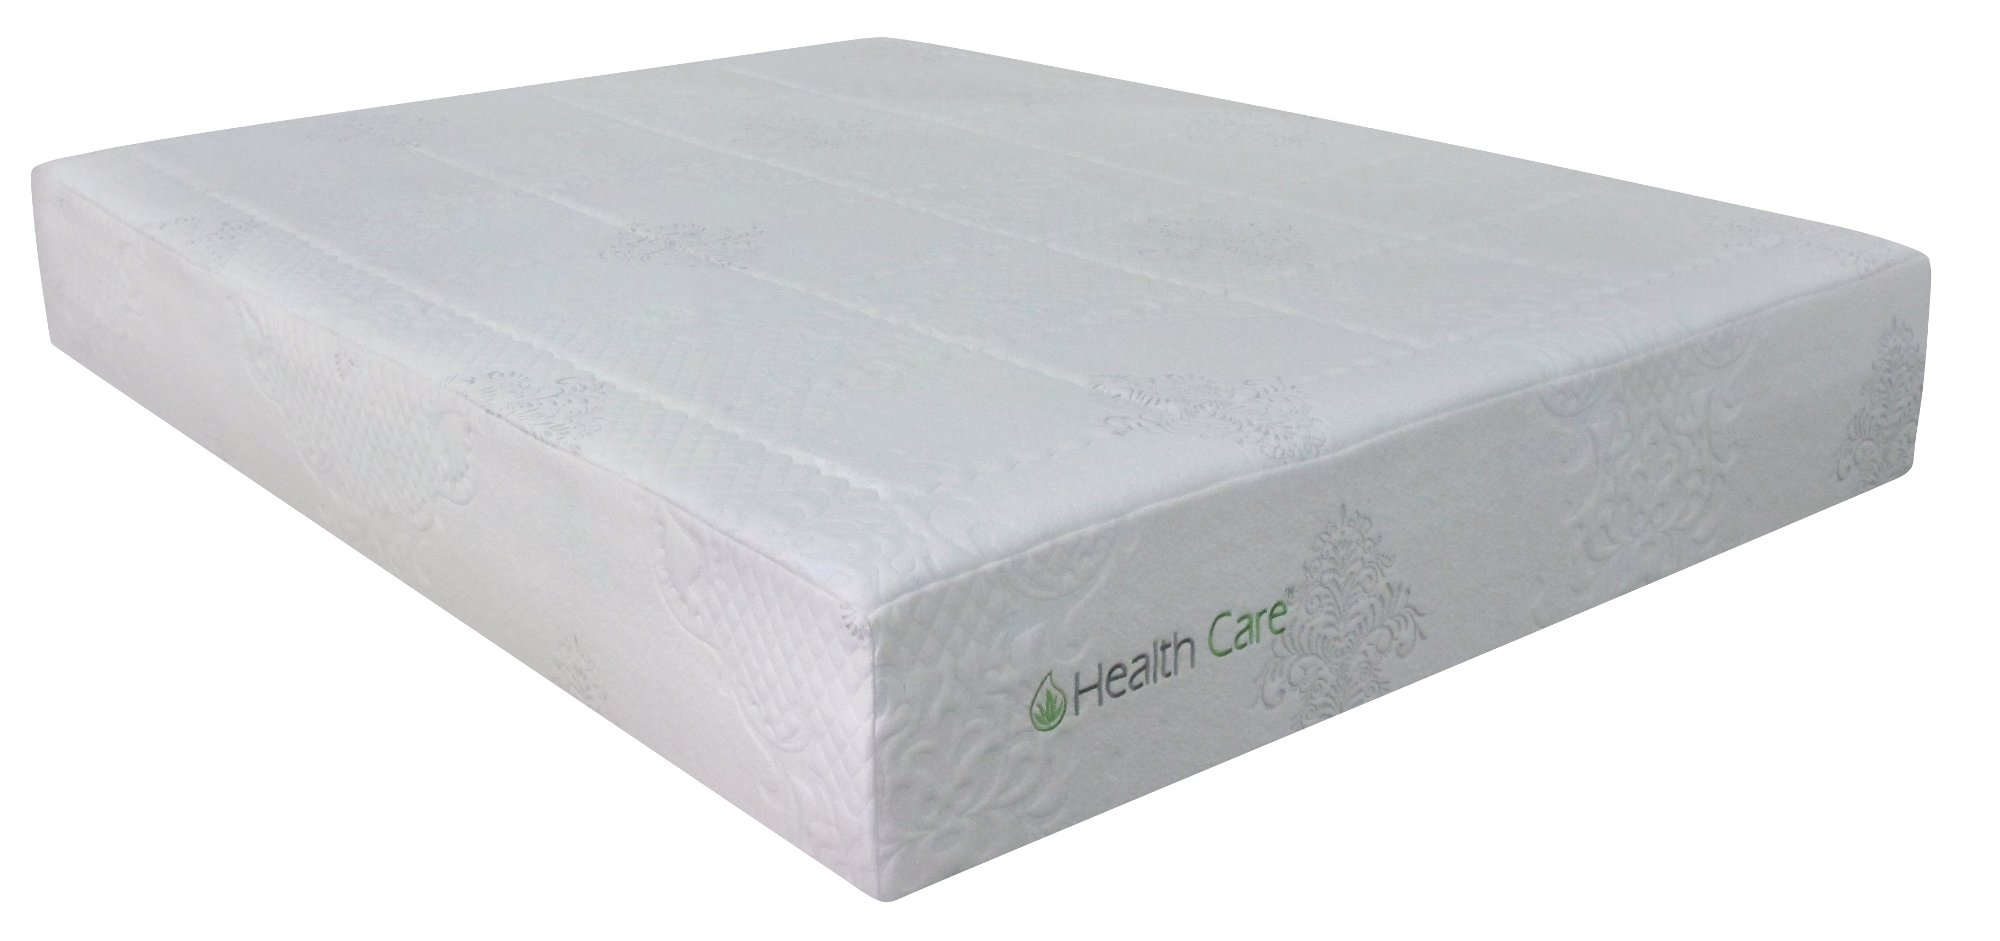 12 Luxury Gel Queen Mattress With Foldable Base Rc Willey Furniture Store